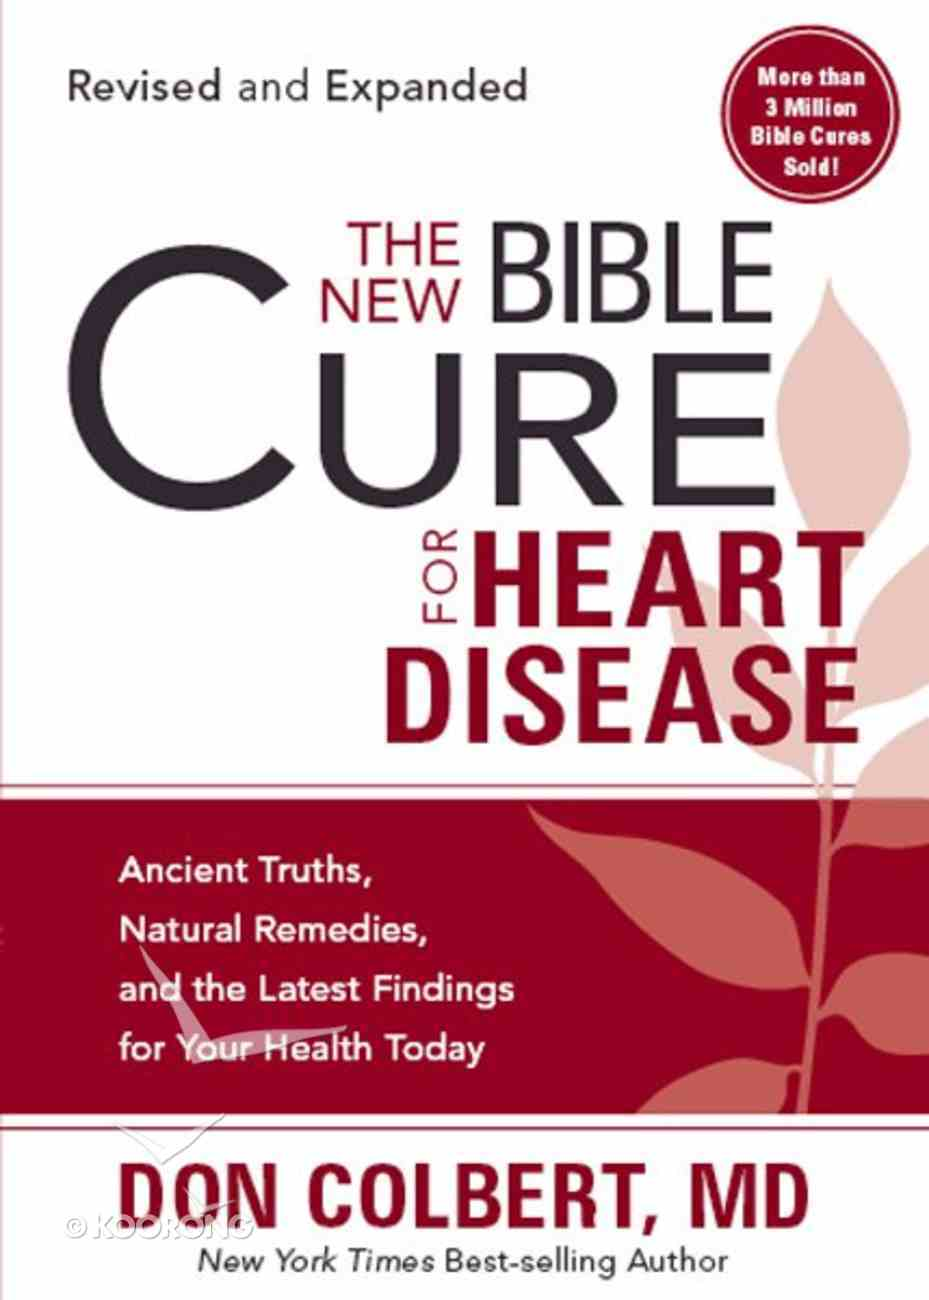 The New Bible Cure For Heart Disease (The New Bible Cure Series) Paperback